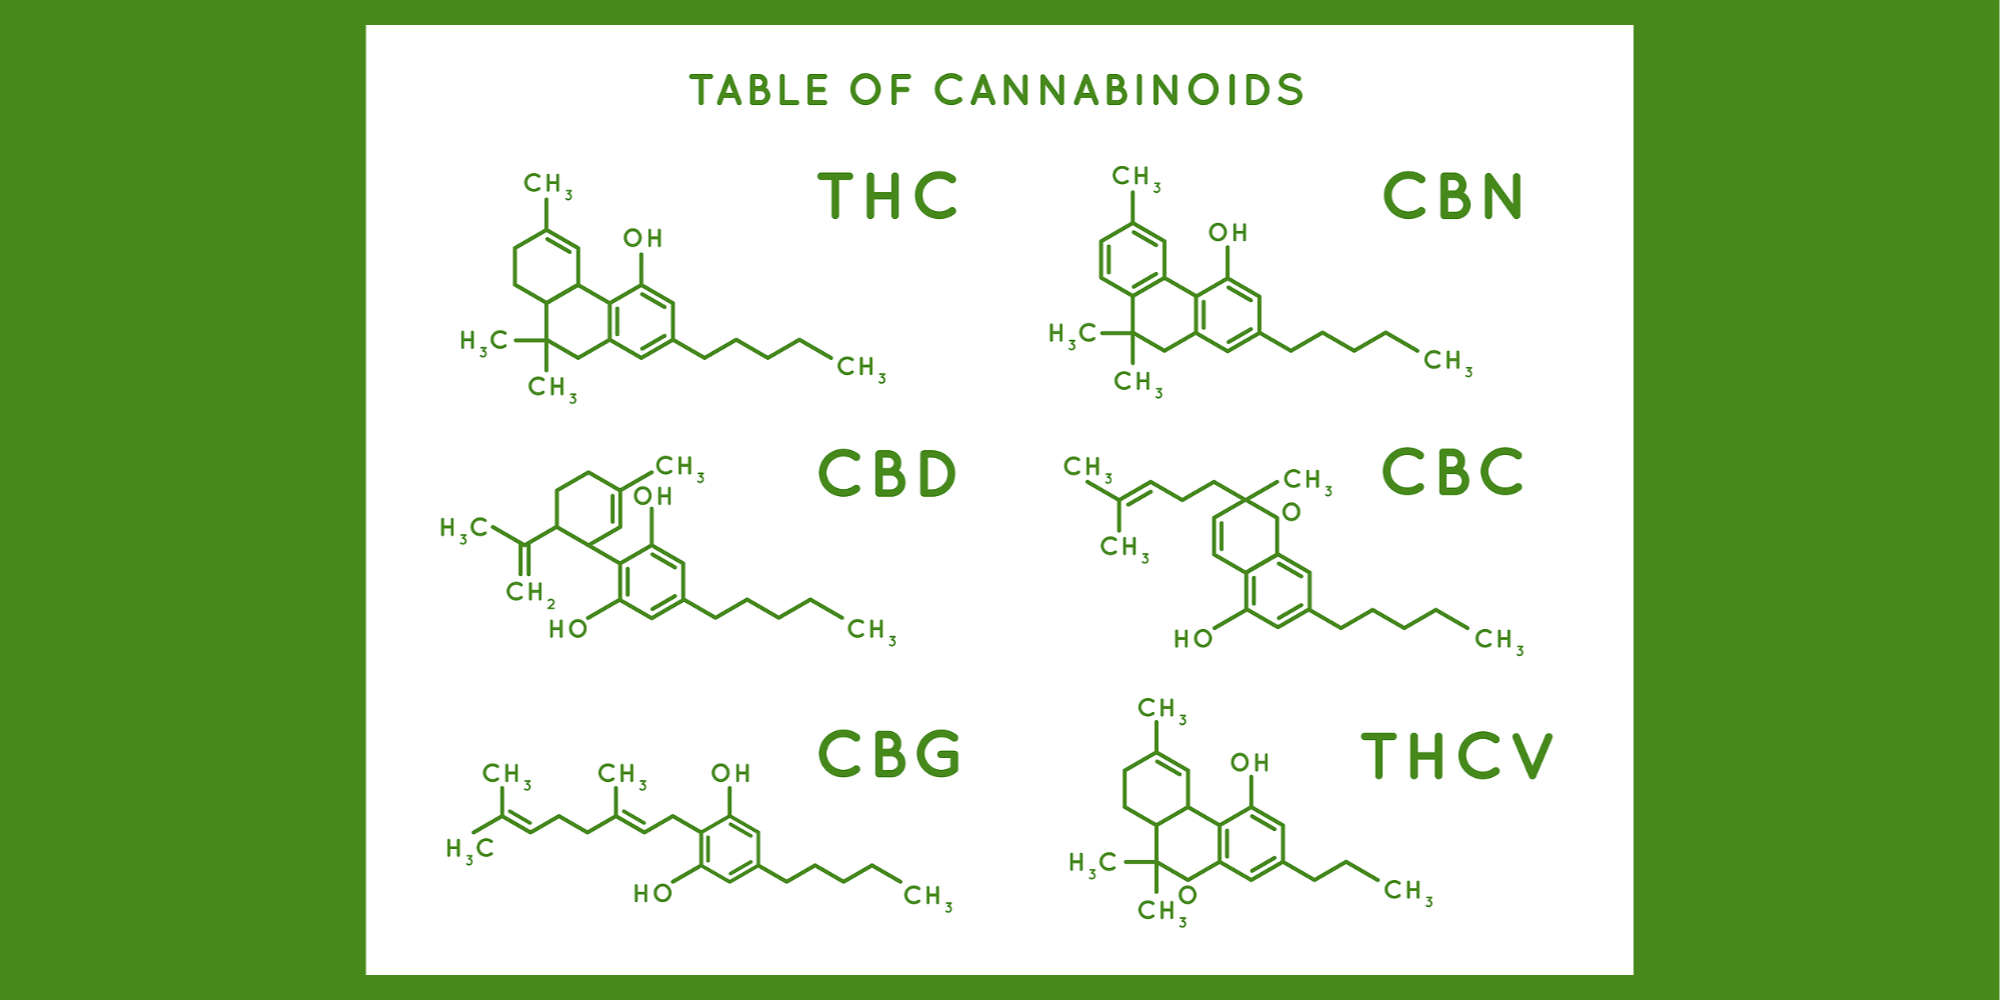 Cannabinoid Structure. Cannabidiol Molecular Structures, Thc And